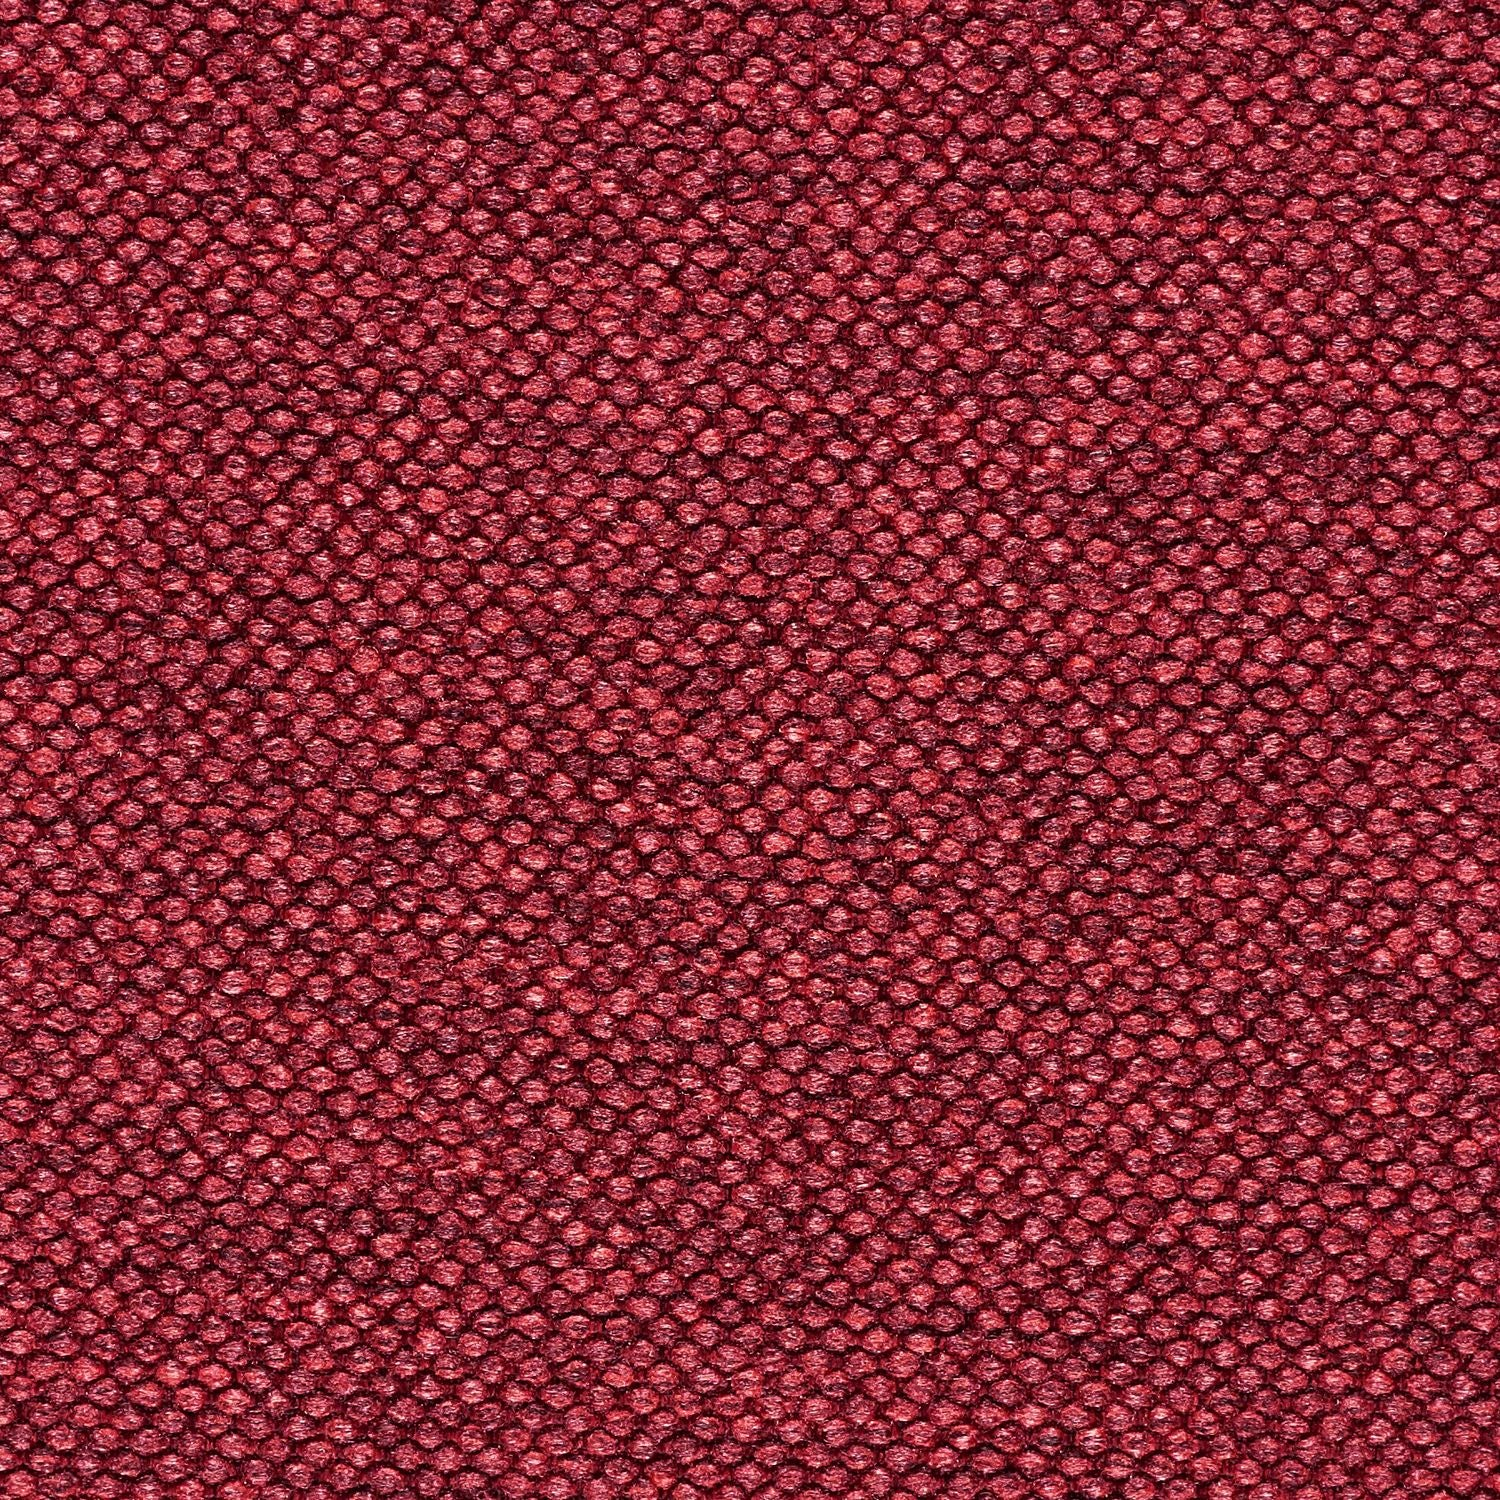 Digi Tweed - Madder Tweed - 4058 - 15